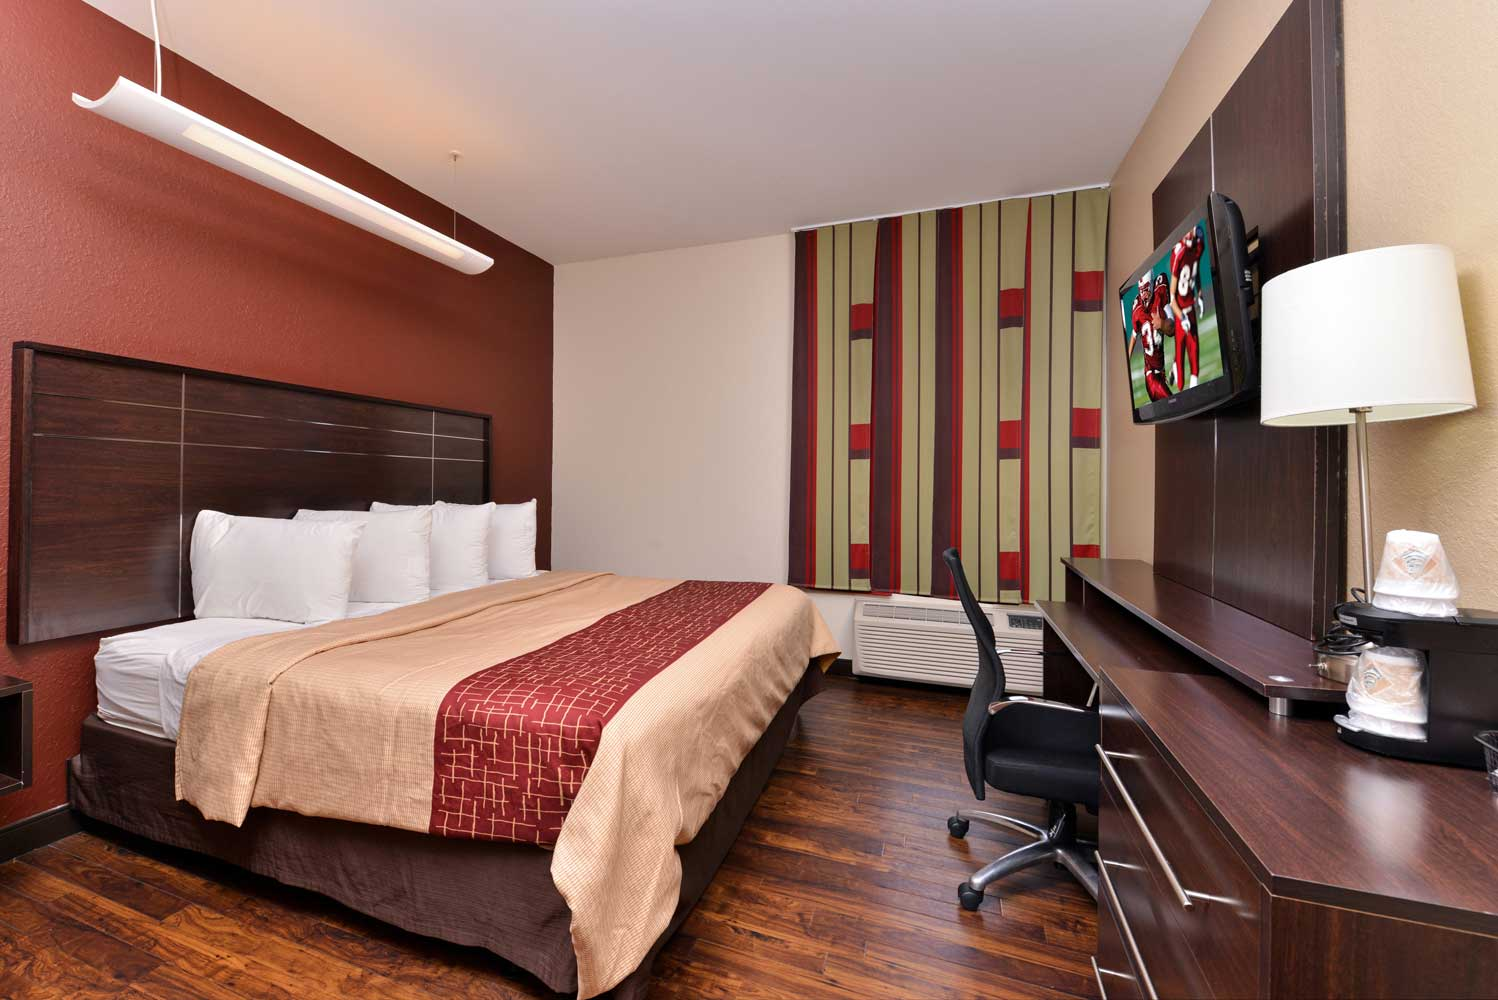 PURE and Red Roof Inn Bring Hypoallergenic Rooms to Locust Grove, GA